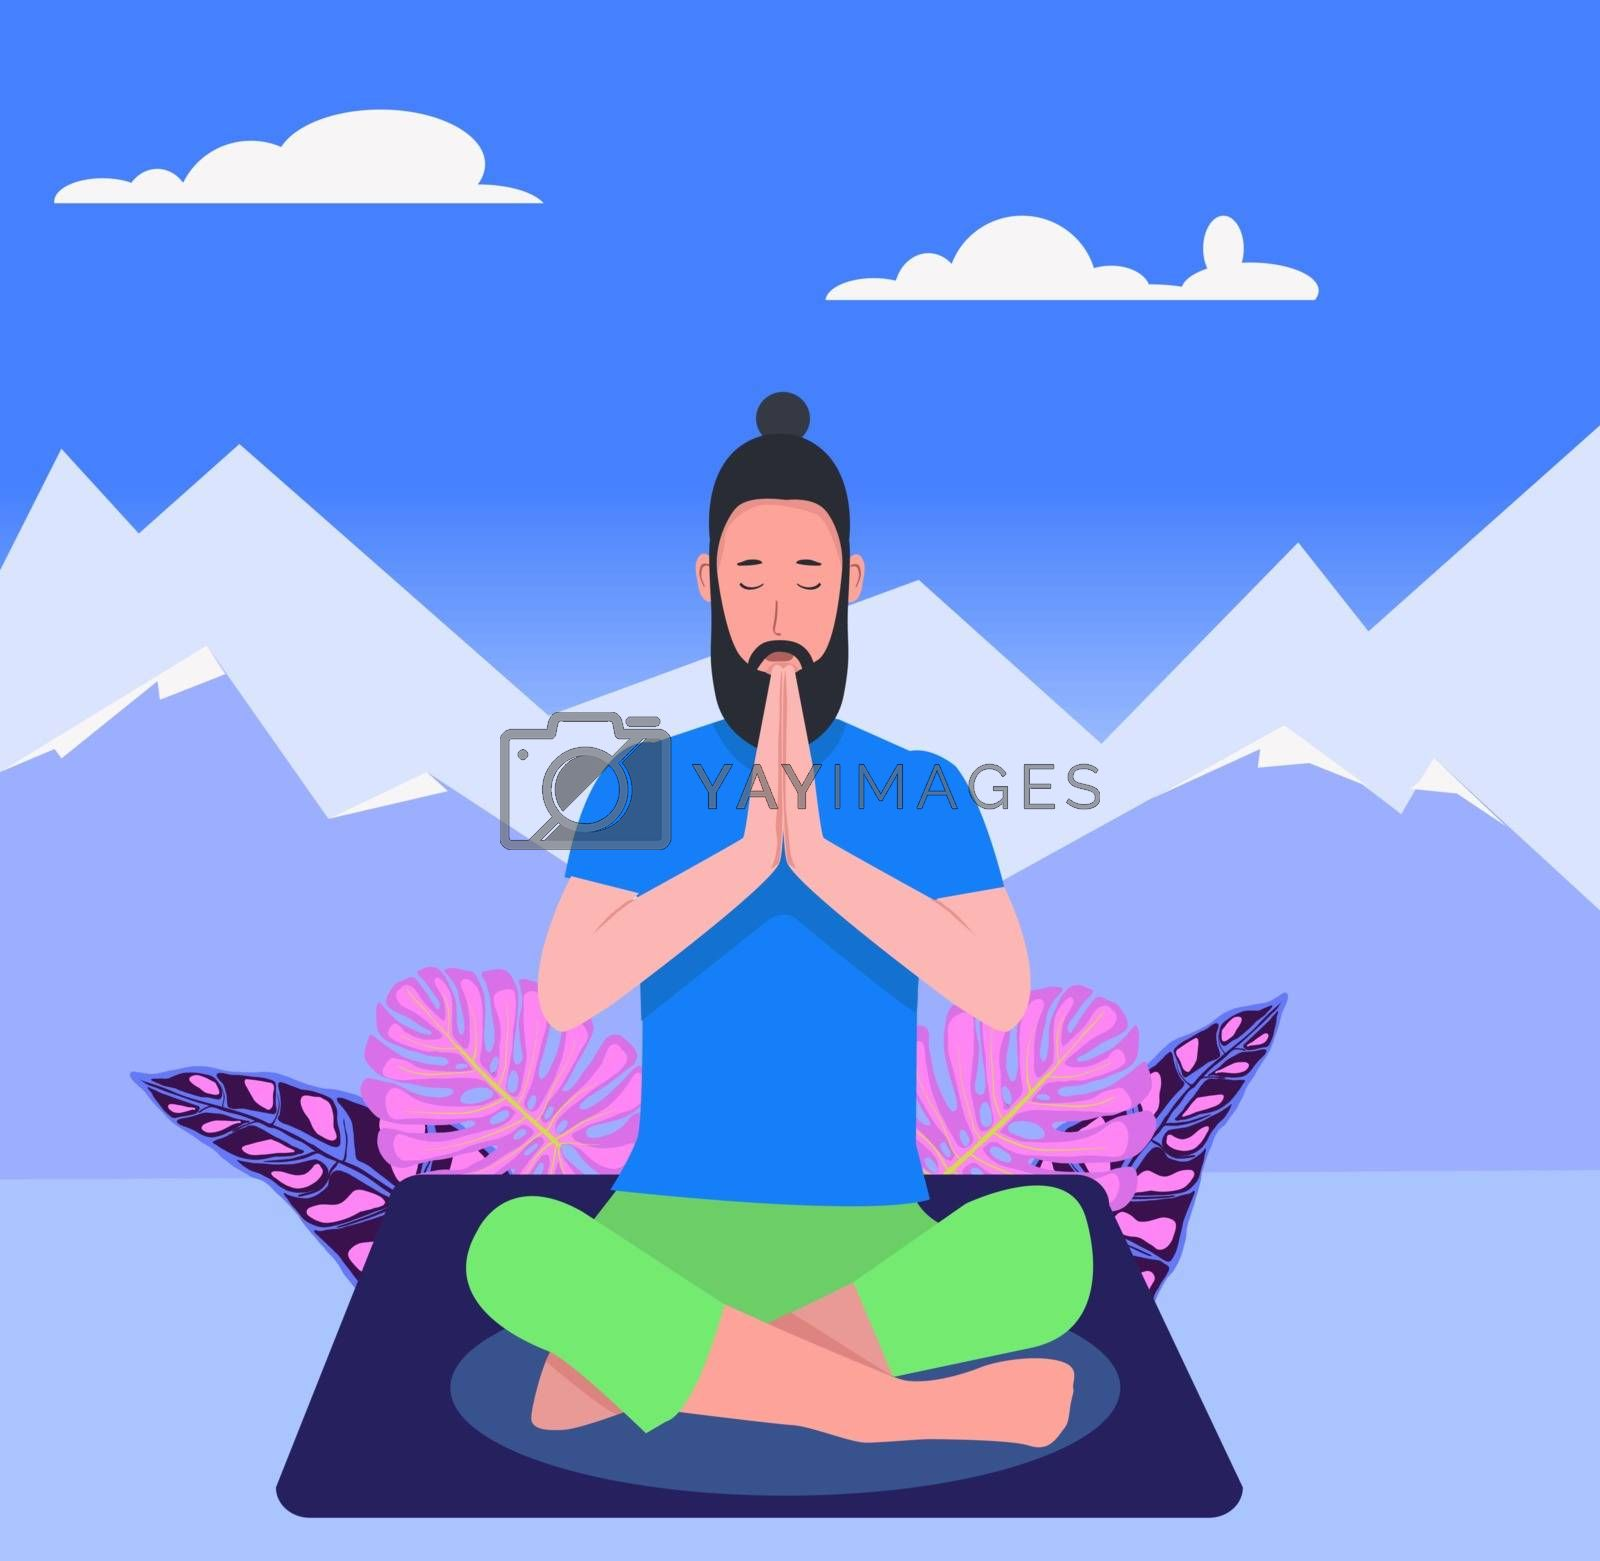 A Hipster man in yoga lotus practices meditation on silhouette mountains background. Practice of yoga. Healthy lifestyle. Man doing yoga sitting in padmasana lotus pose relaxing.